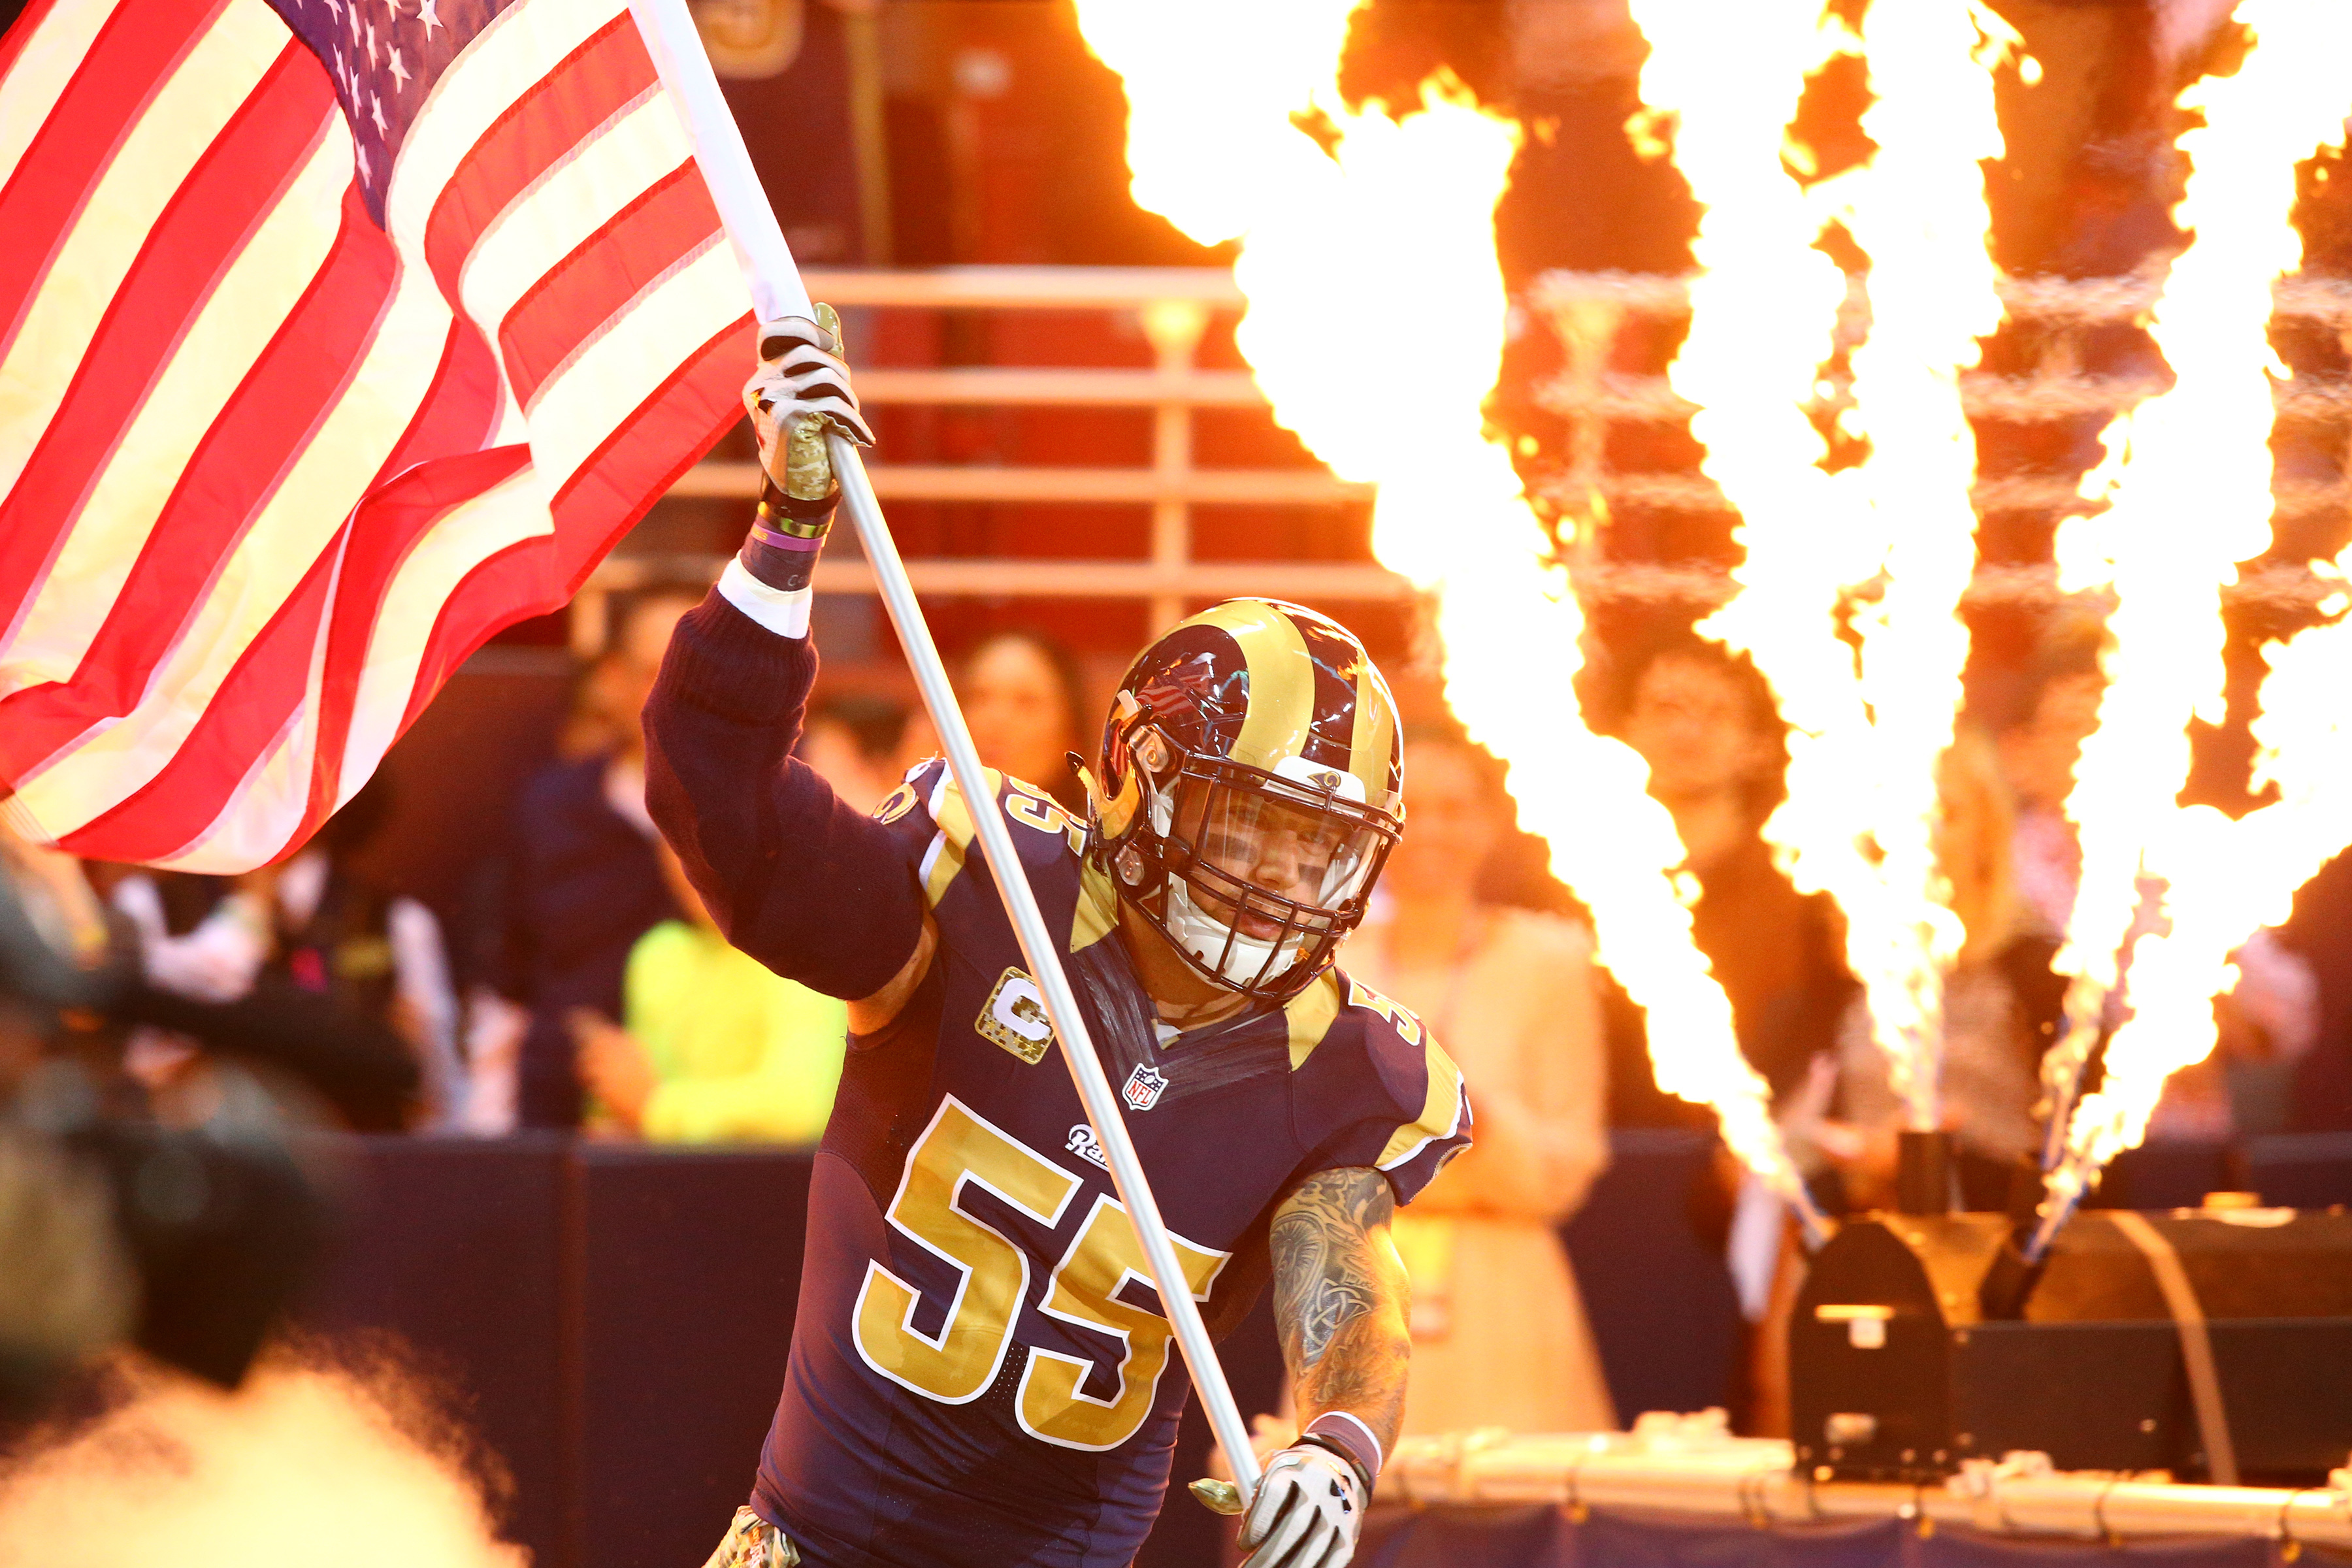 Flags, fire and the NFL!!!